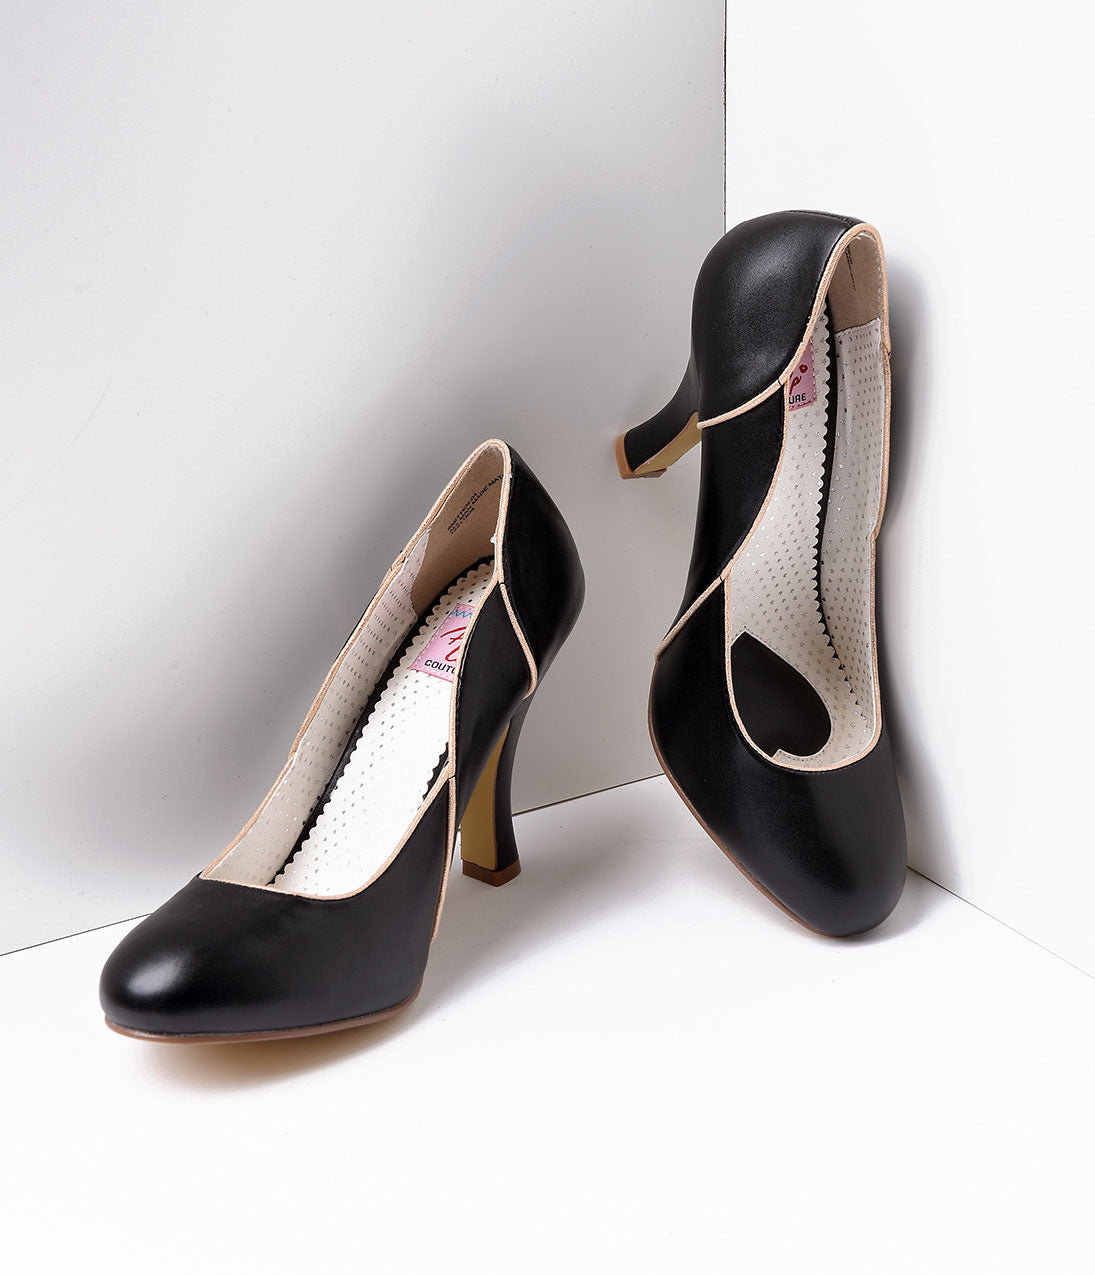 Pin Up Shoes- Heels, Pumps & Flats Black Leatherette Heel With Gold Accents $62.00 AT vintagedancer.com